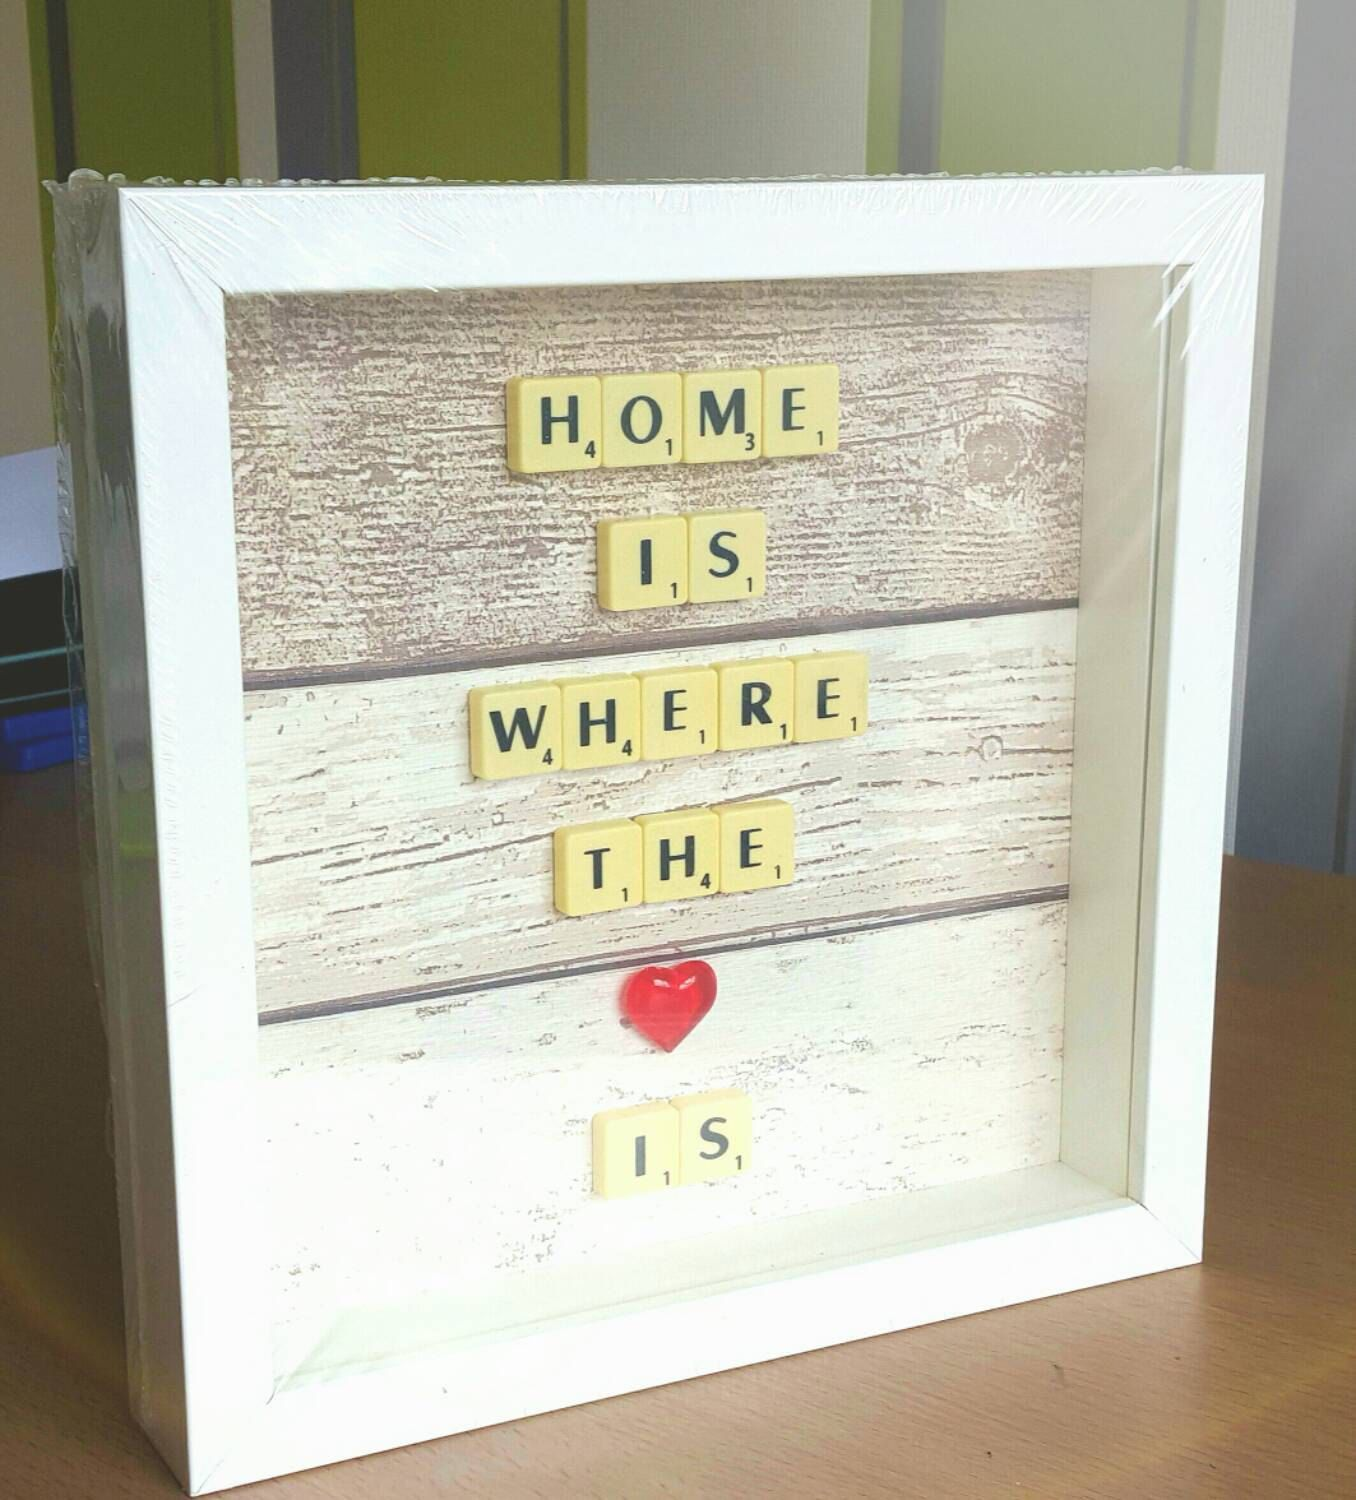 home is where the heart is display picture scrabble word new house gift family friends keepsake. Black Bedroom Furniture Sets. Home Design Ideas